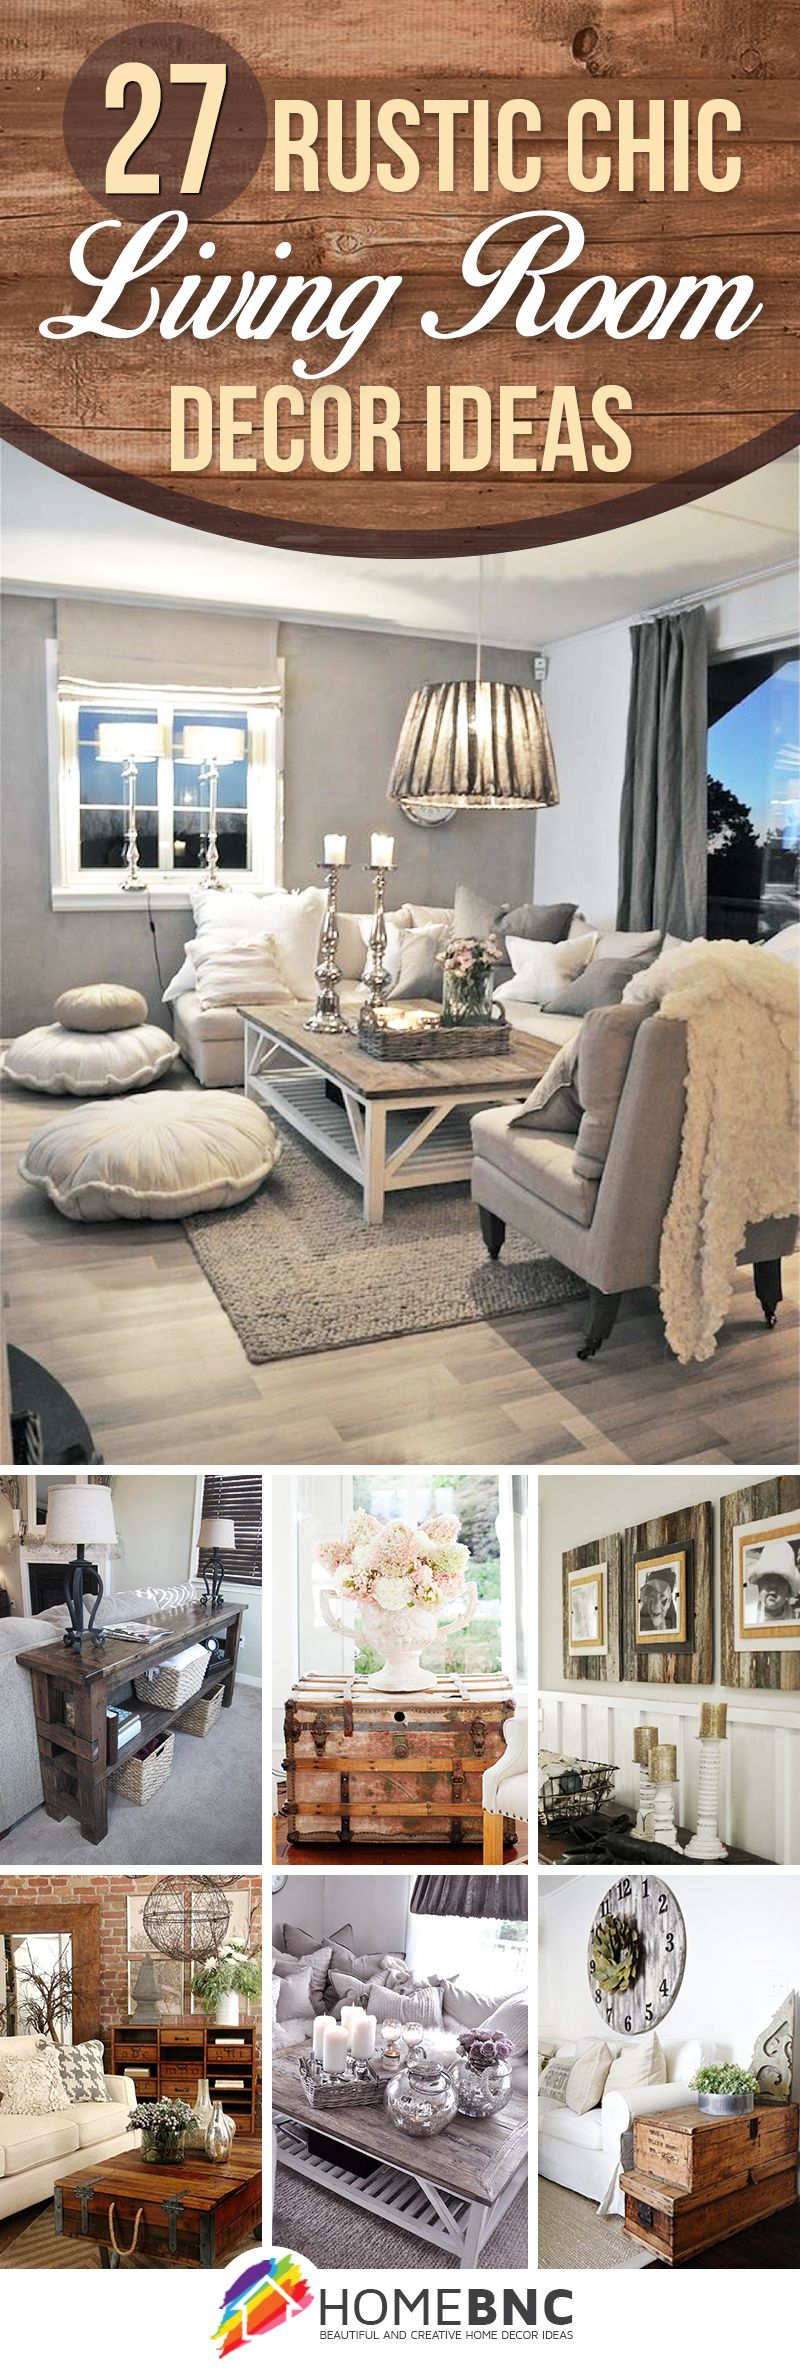 Grey Country Style Living Room Ideas Furniture Online Rustic Chic For Mi Casa In 2019